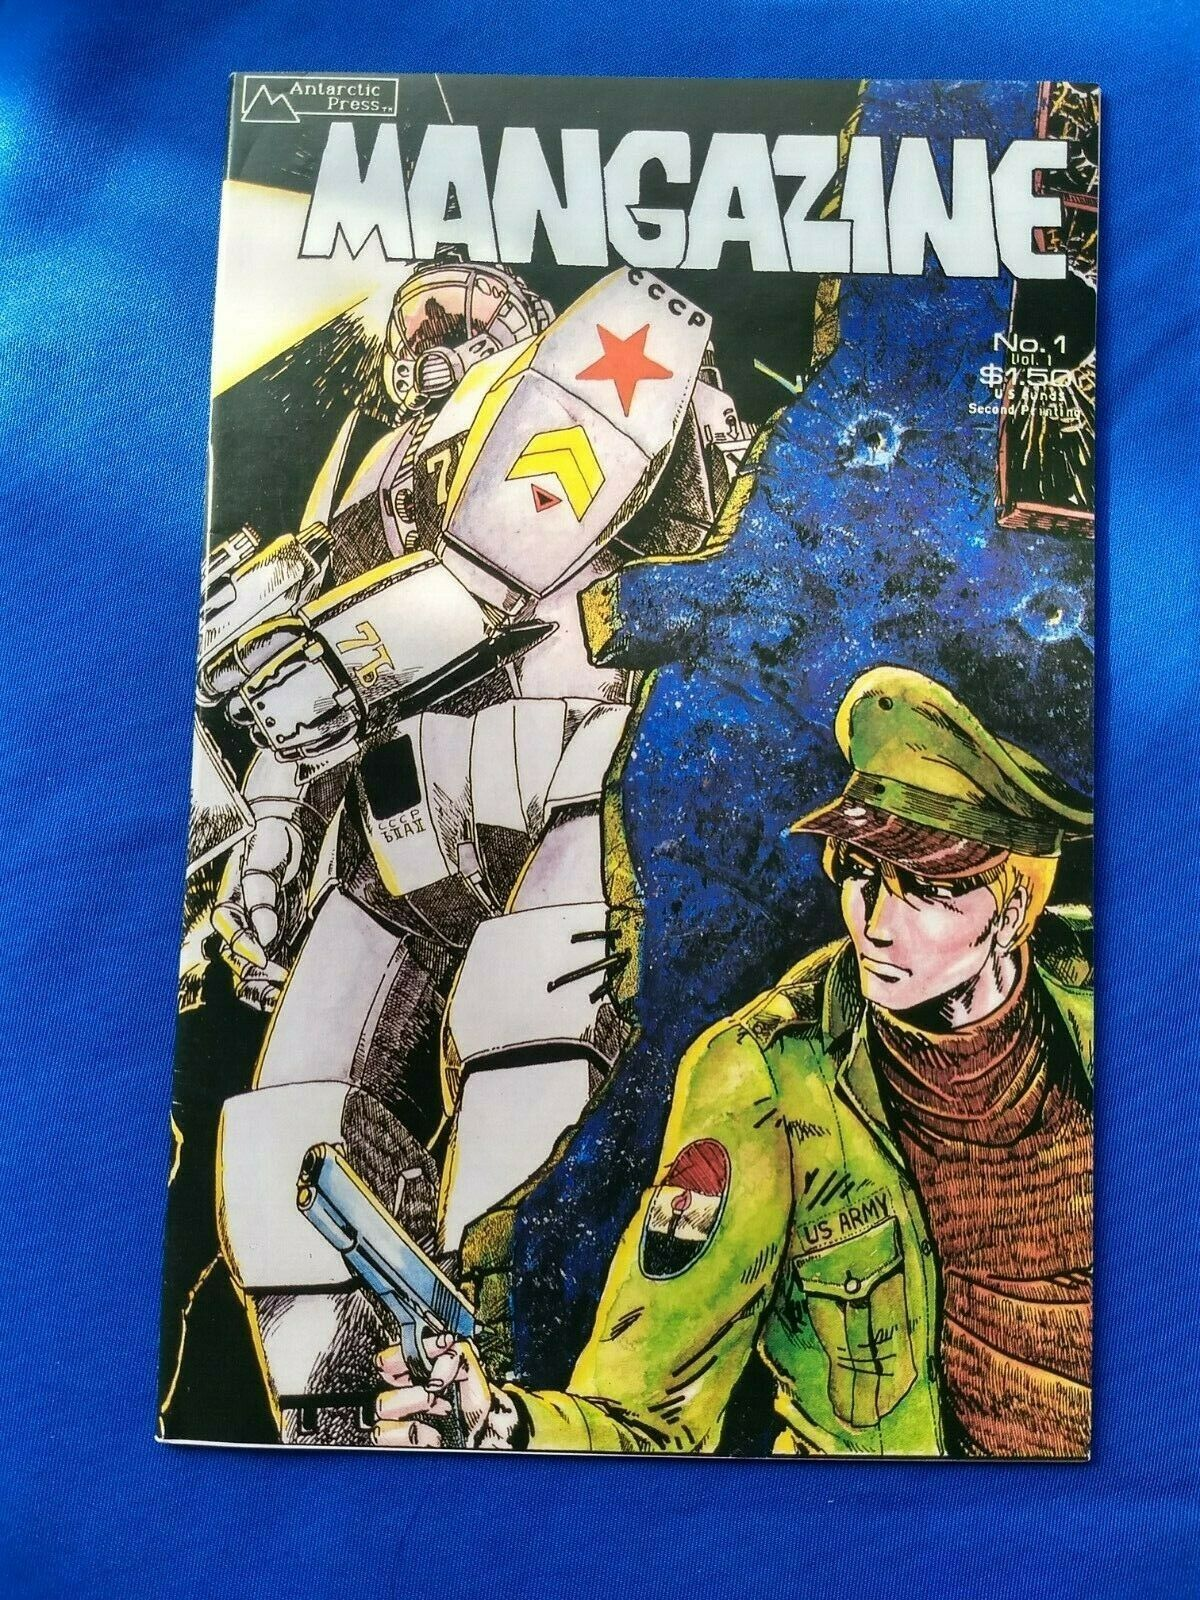 MANGAZINE 1 HIGH GRADE 2ND PRINT ANTARCTIC PRESS 1986 INDIE/USA MANGA COMICS+ - $1.25